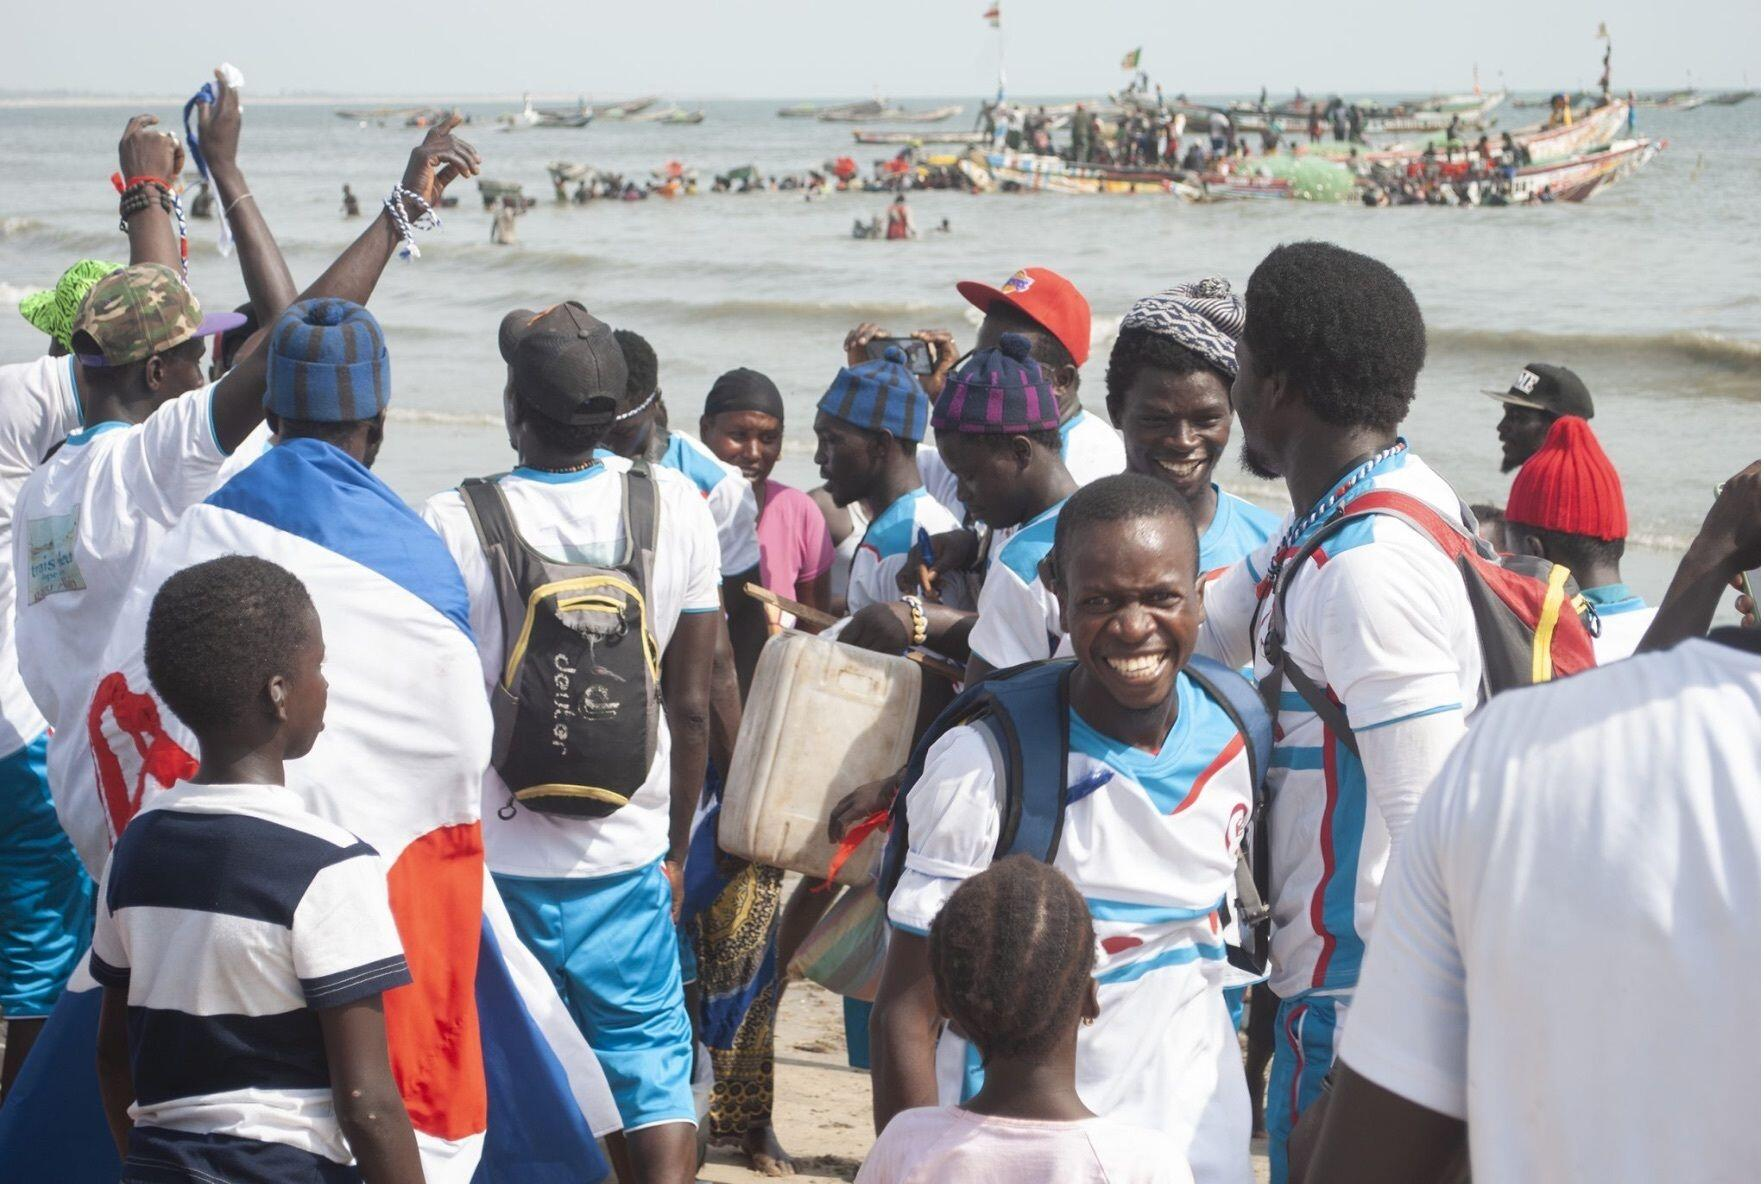 Celebration on shore Gambia